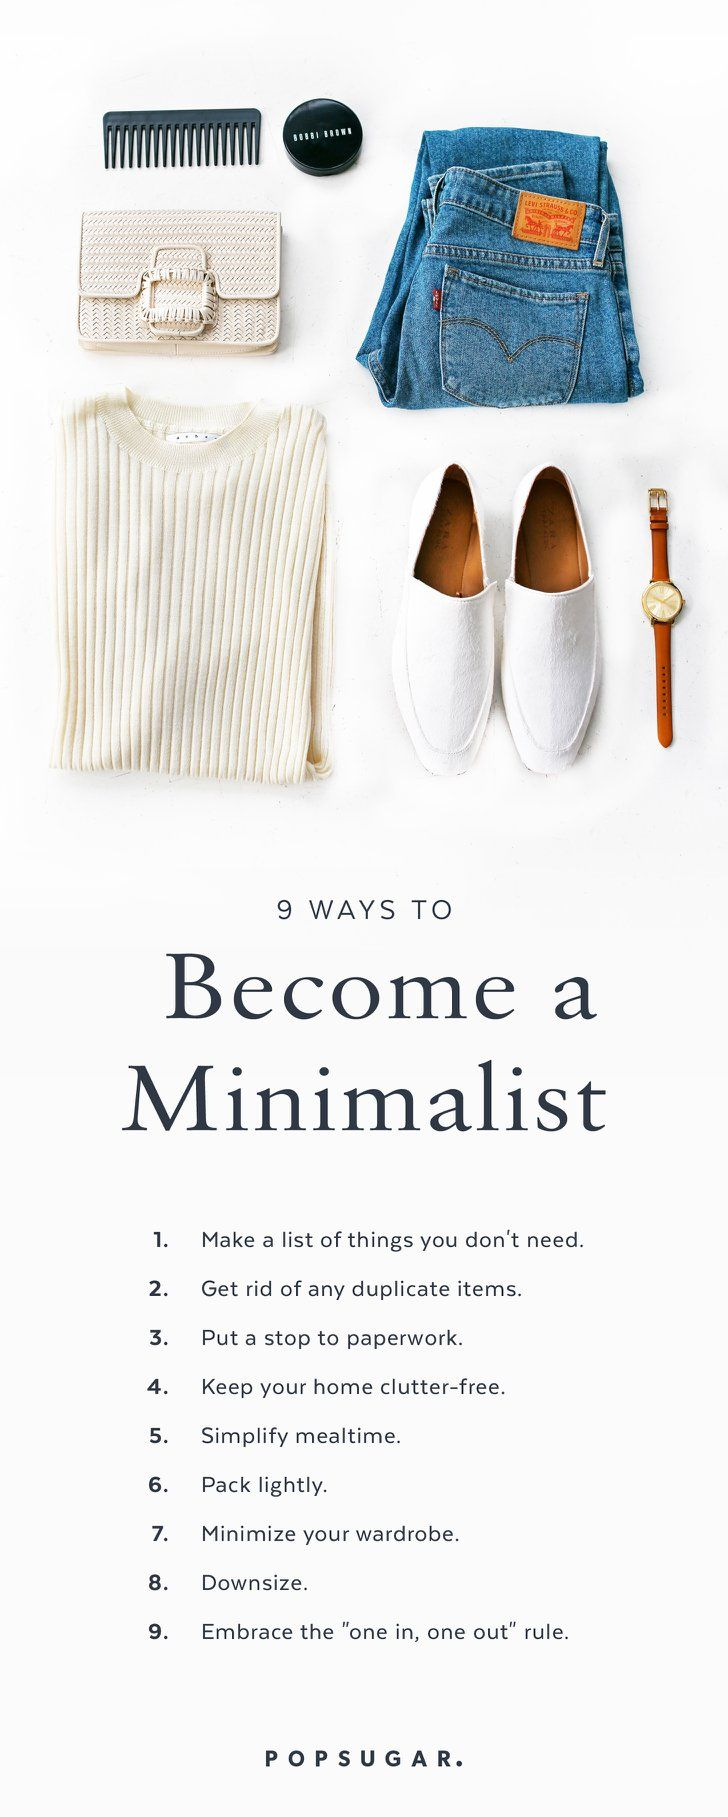 Pin for Later: 9 Ways to Be a Minimalist